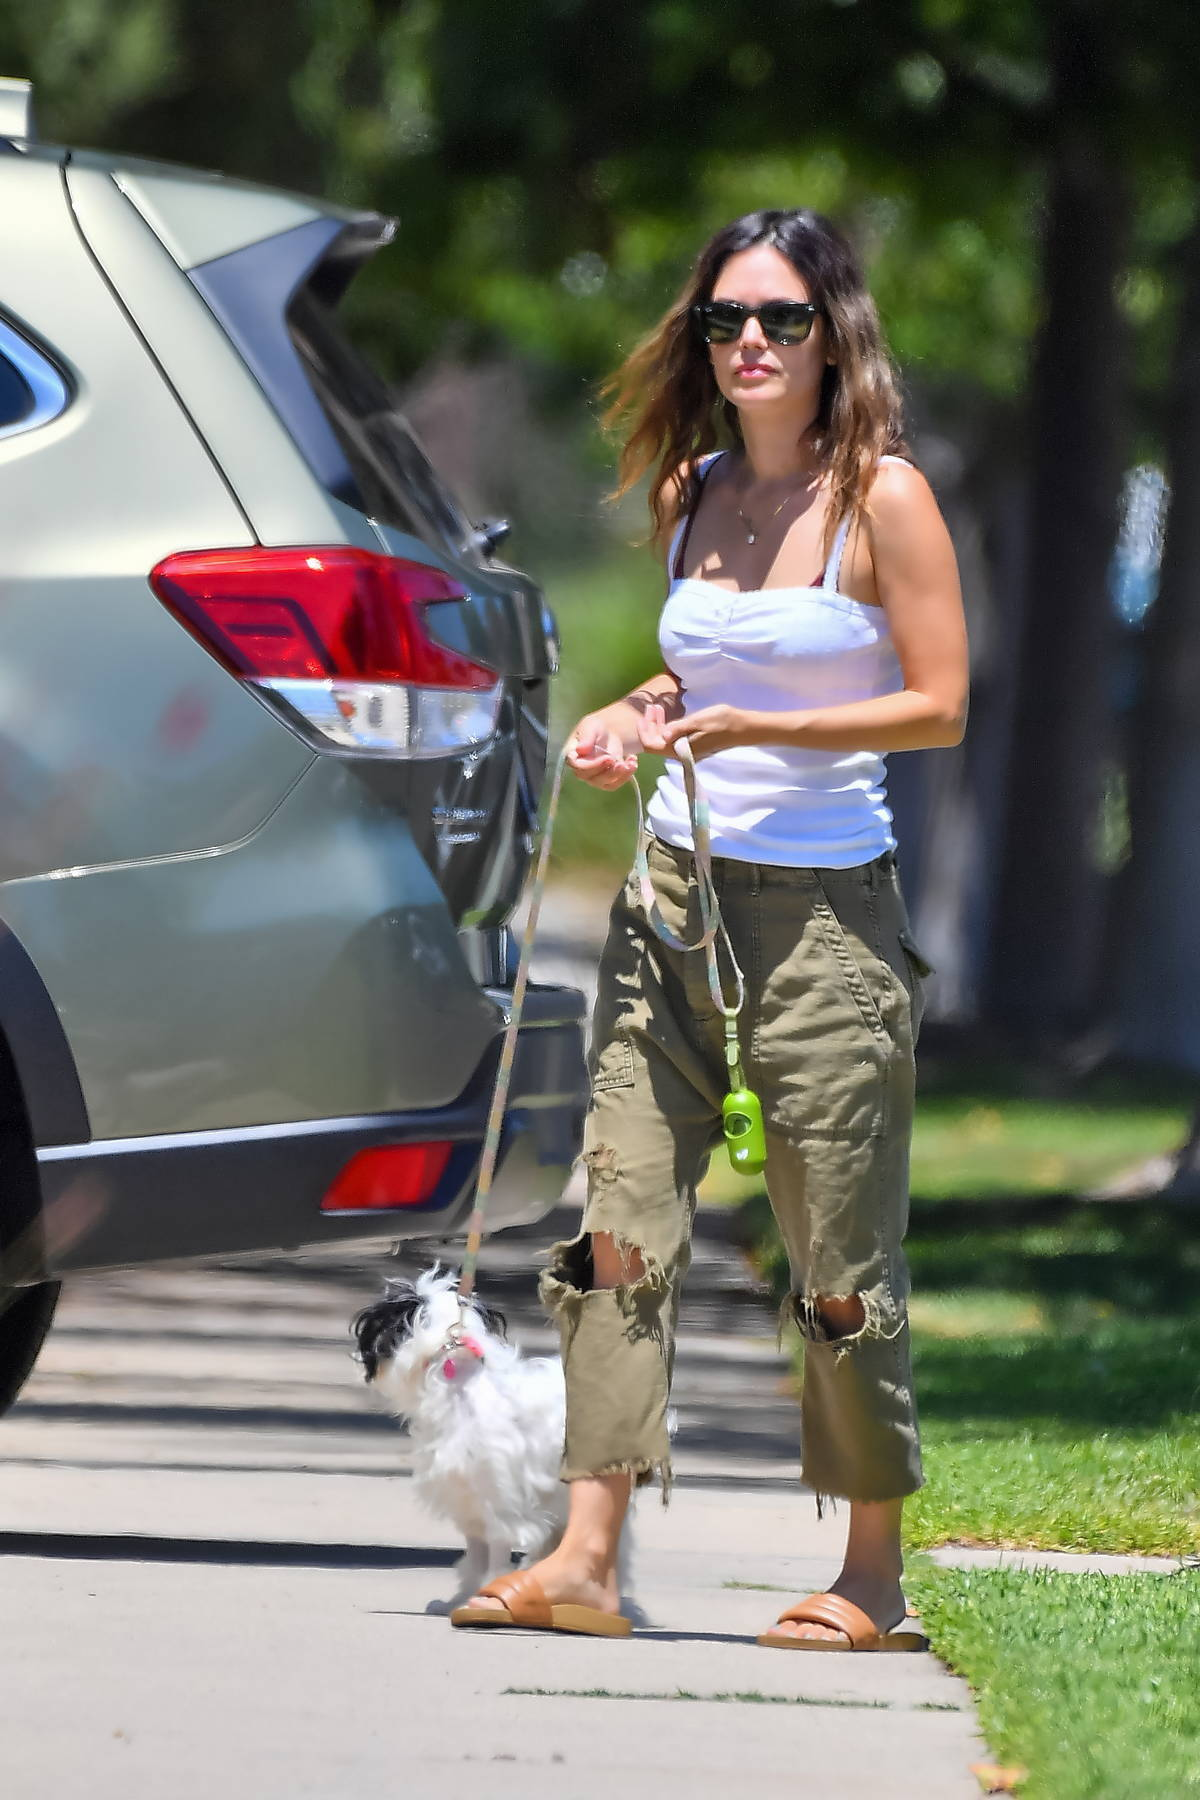 Rachel Bilson takes her new dog out on a walk in Studio City, California